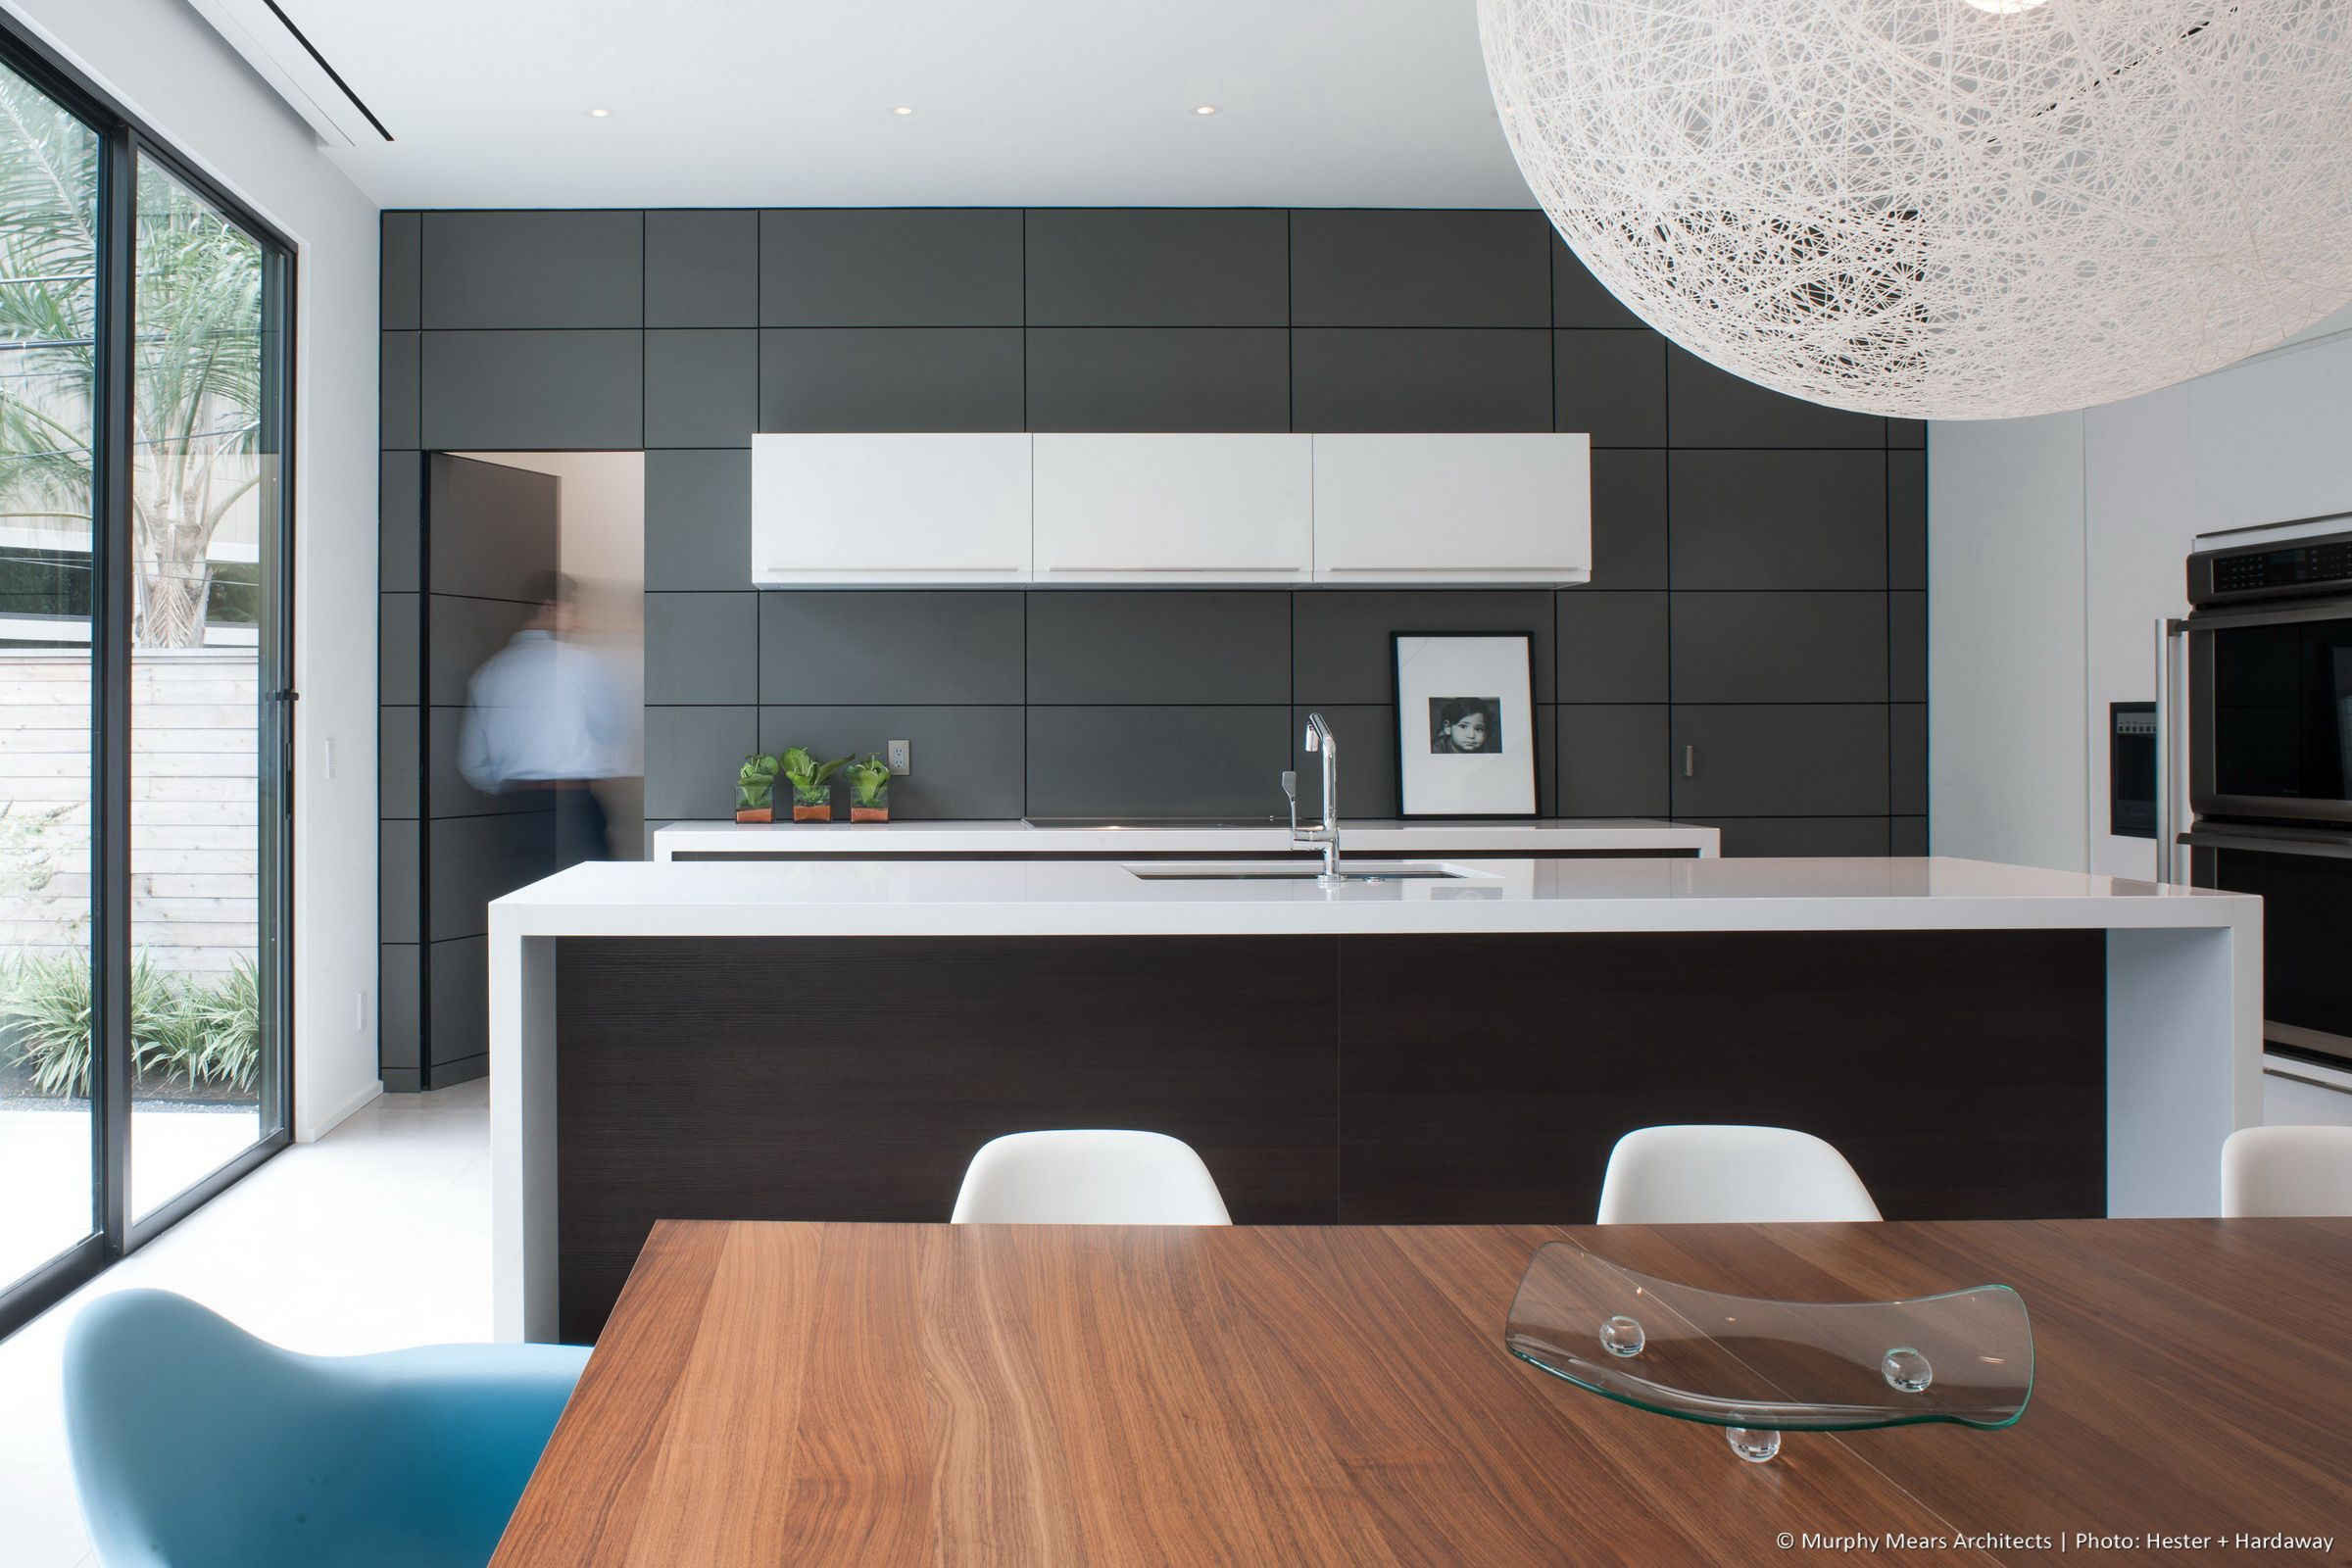 Hidden door within the kitchen wall panels provides access to pantry ...